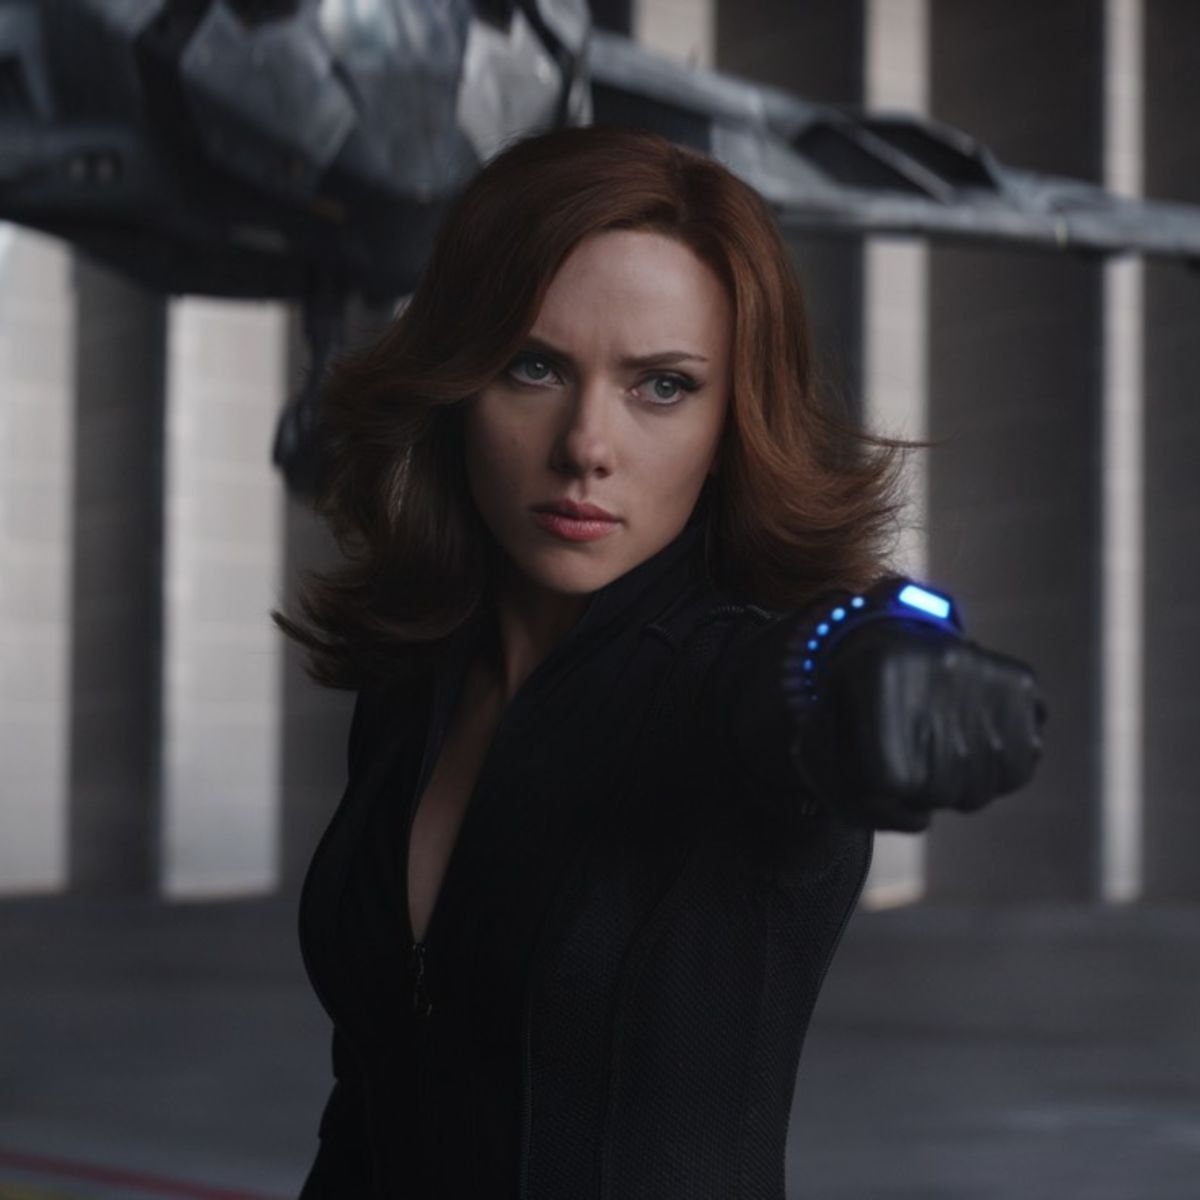 Marvel's 'Black Widow' Movie Lands Director Cate Shortland